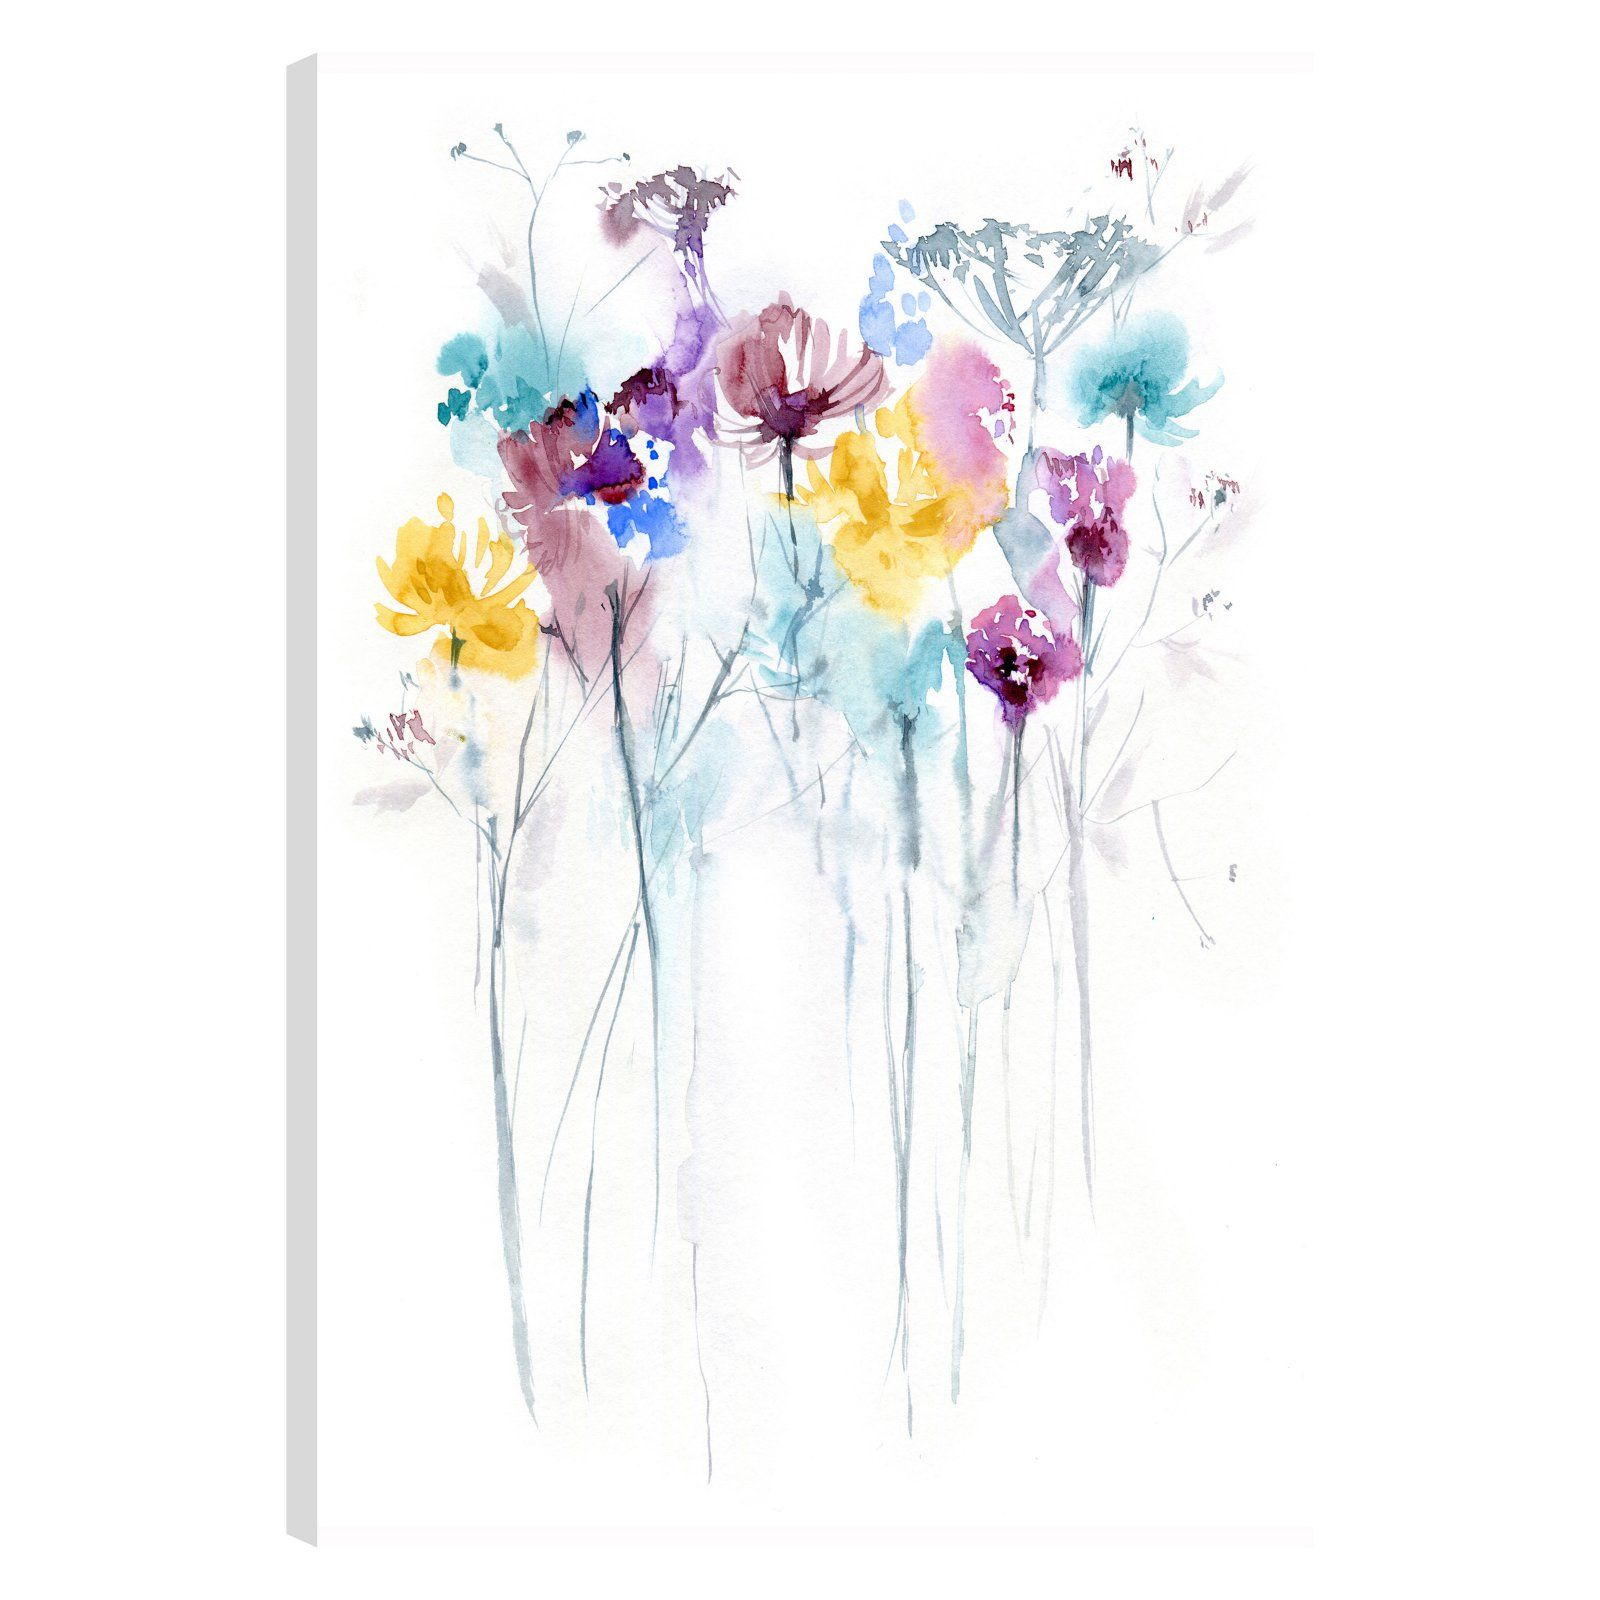 Artmaison Canada The Flowers Xi Canvas Wall Art Watercolor